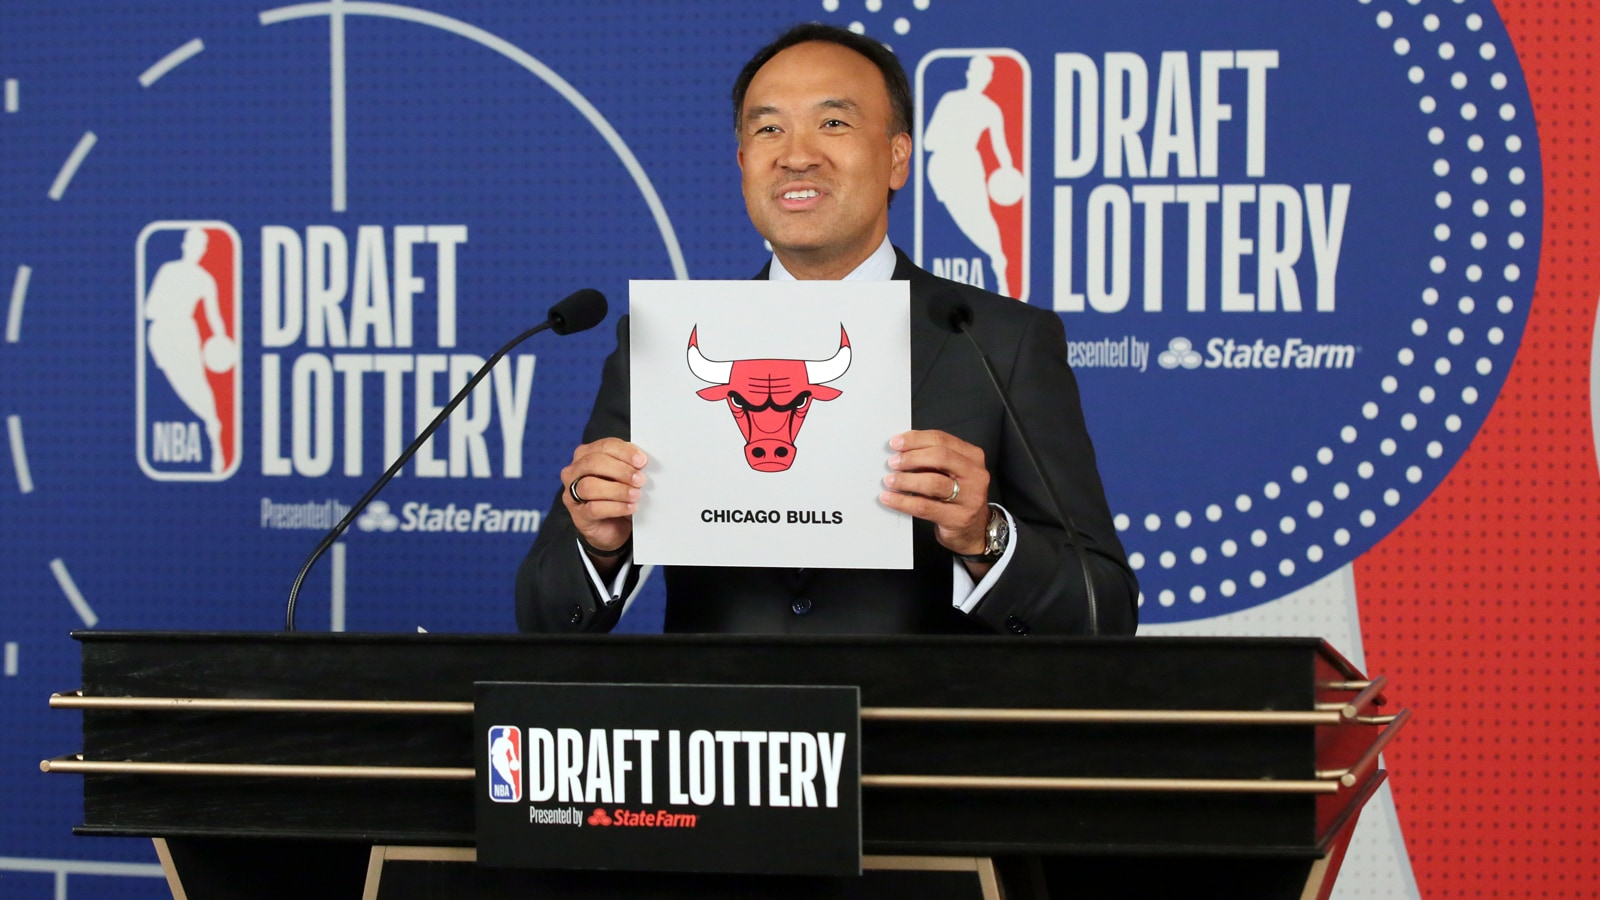 Mark Tatum at the NBA Draft Lottery